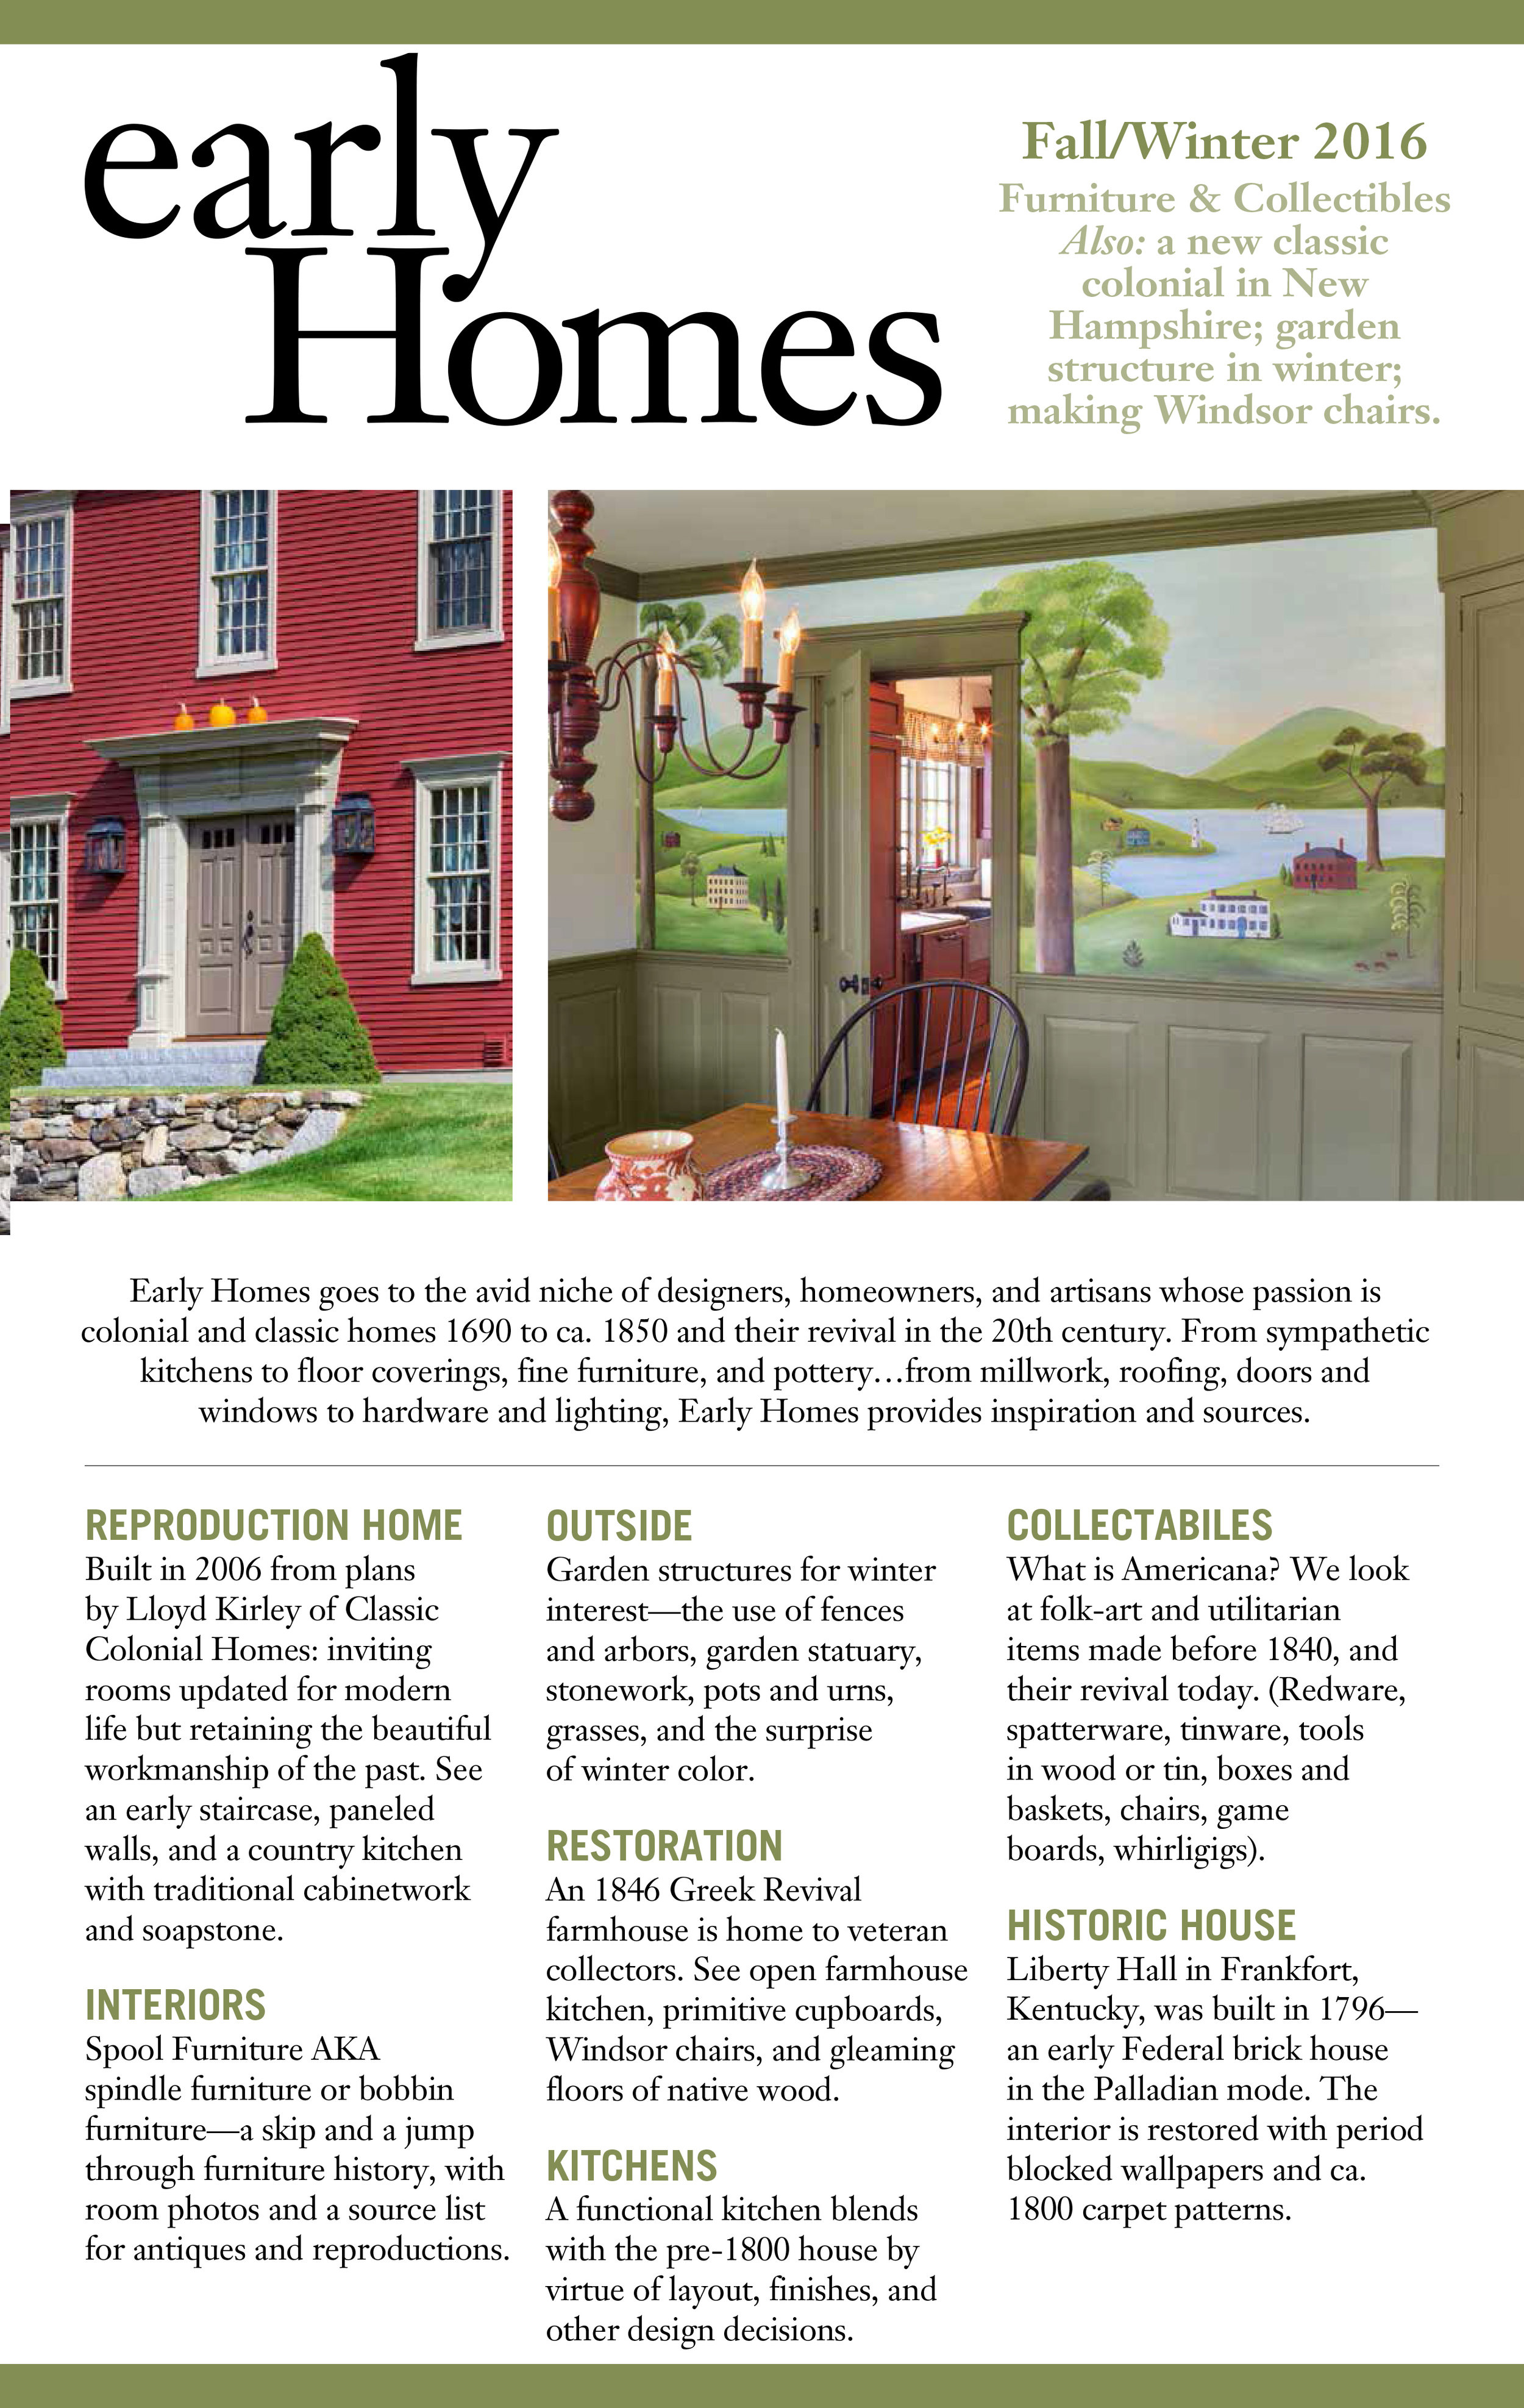 A CCH home will be featured in the next edition of Early Homes Magazine...tune in for more